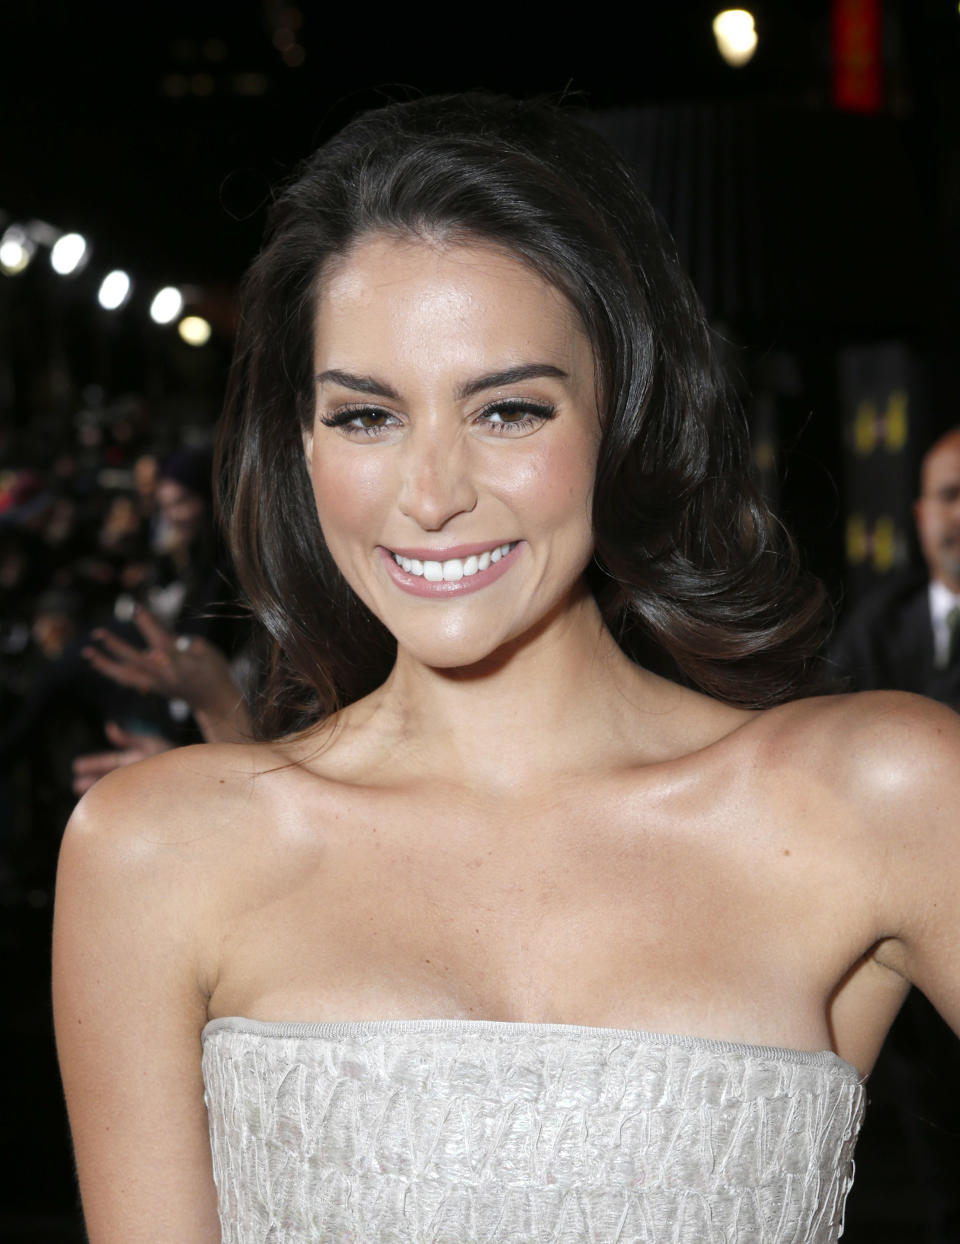 FILE - This Jan. 14, 2013 file photo shows actress Genesis Rodriguez at the LA premiere of